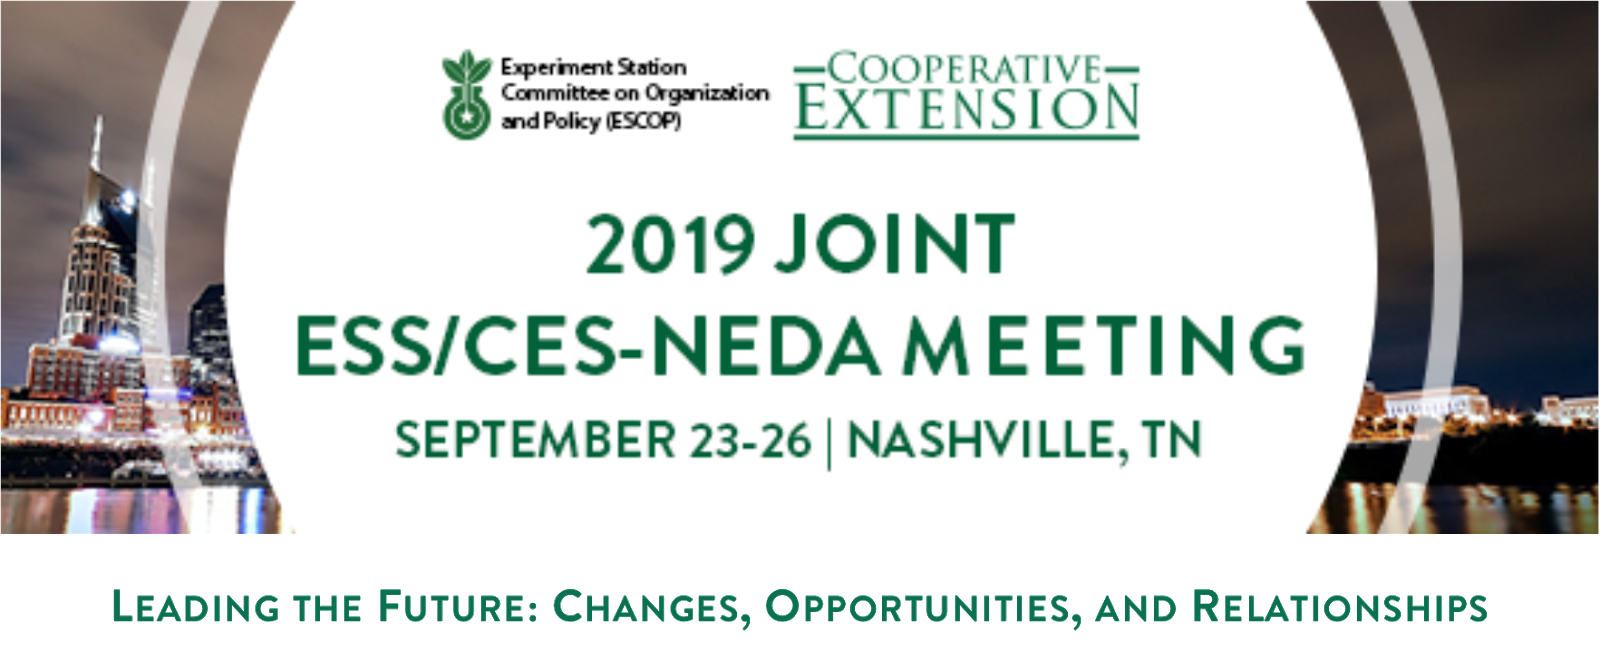 ECOP Monday Minute: 2019 Joint ESS/CES-NEDA Meeting Registration